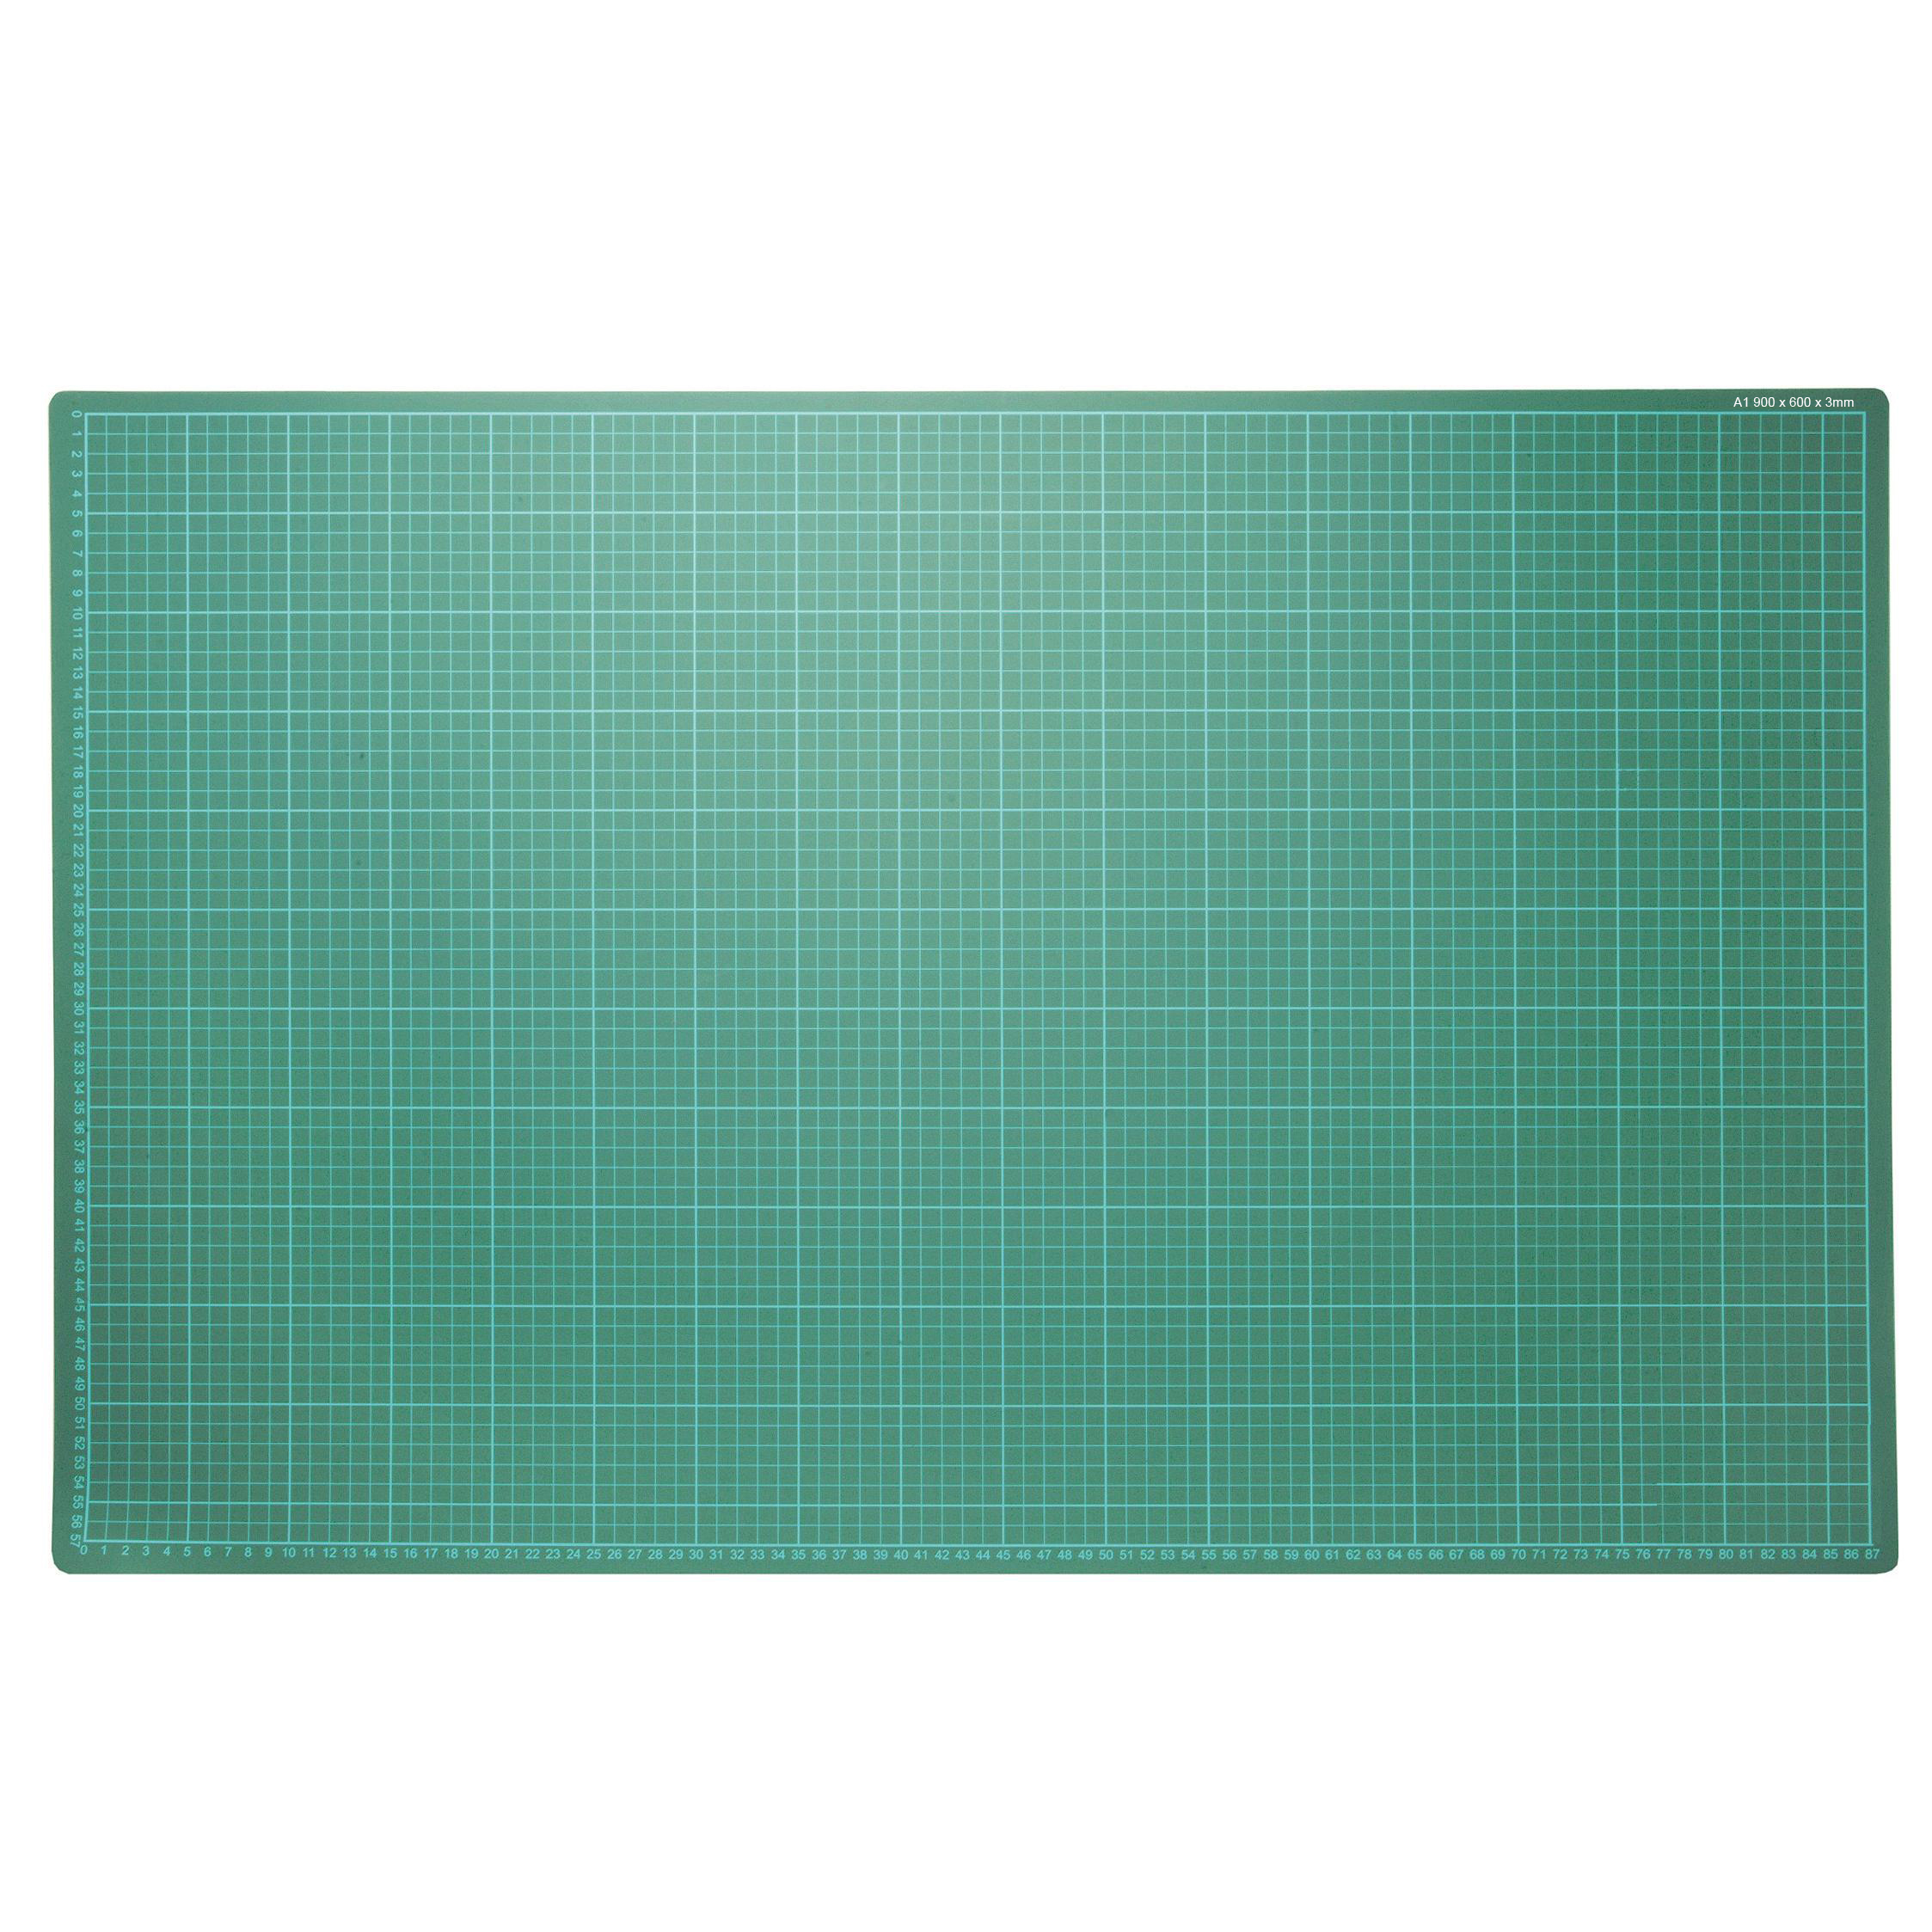 MS1 Cutting Mat 90cm x 60cm A1 (pc)